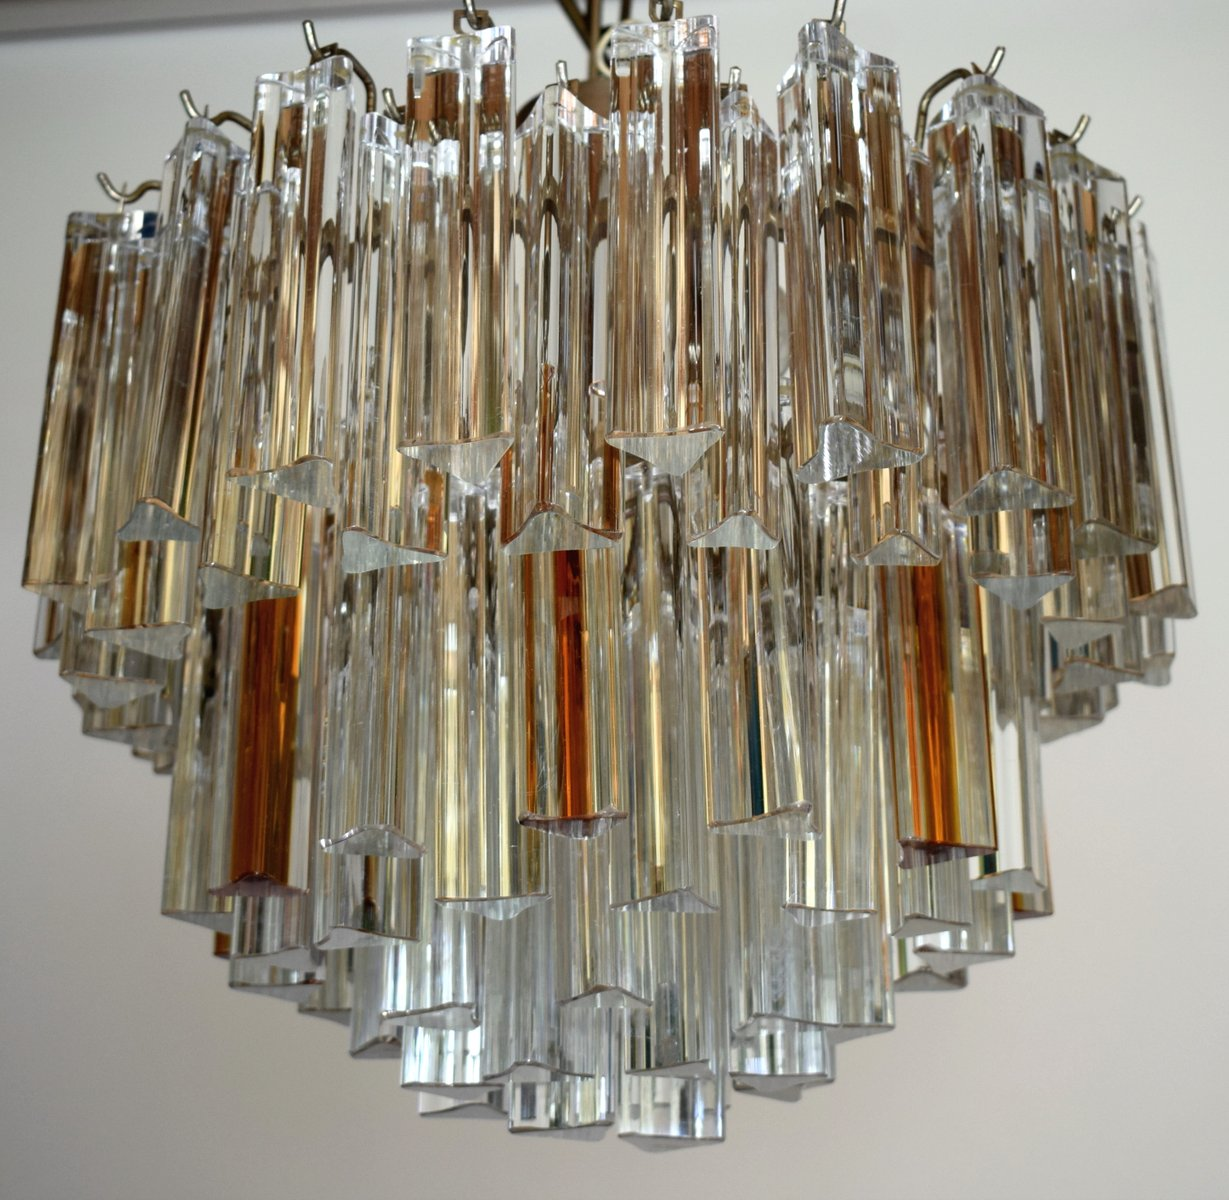 Mid century modern chandelier with clear and amber glass for sale at mid century modern chandelier with clear and amber glass mozeypictures